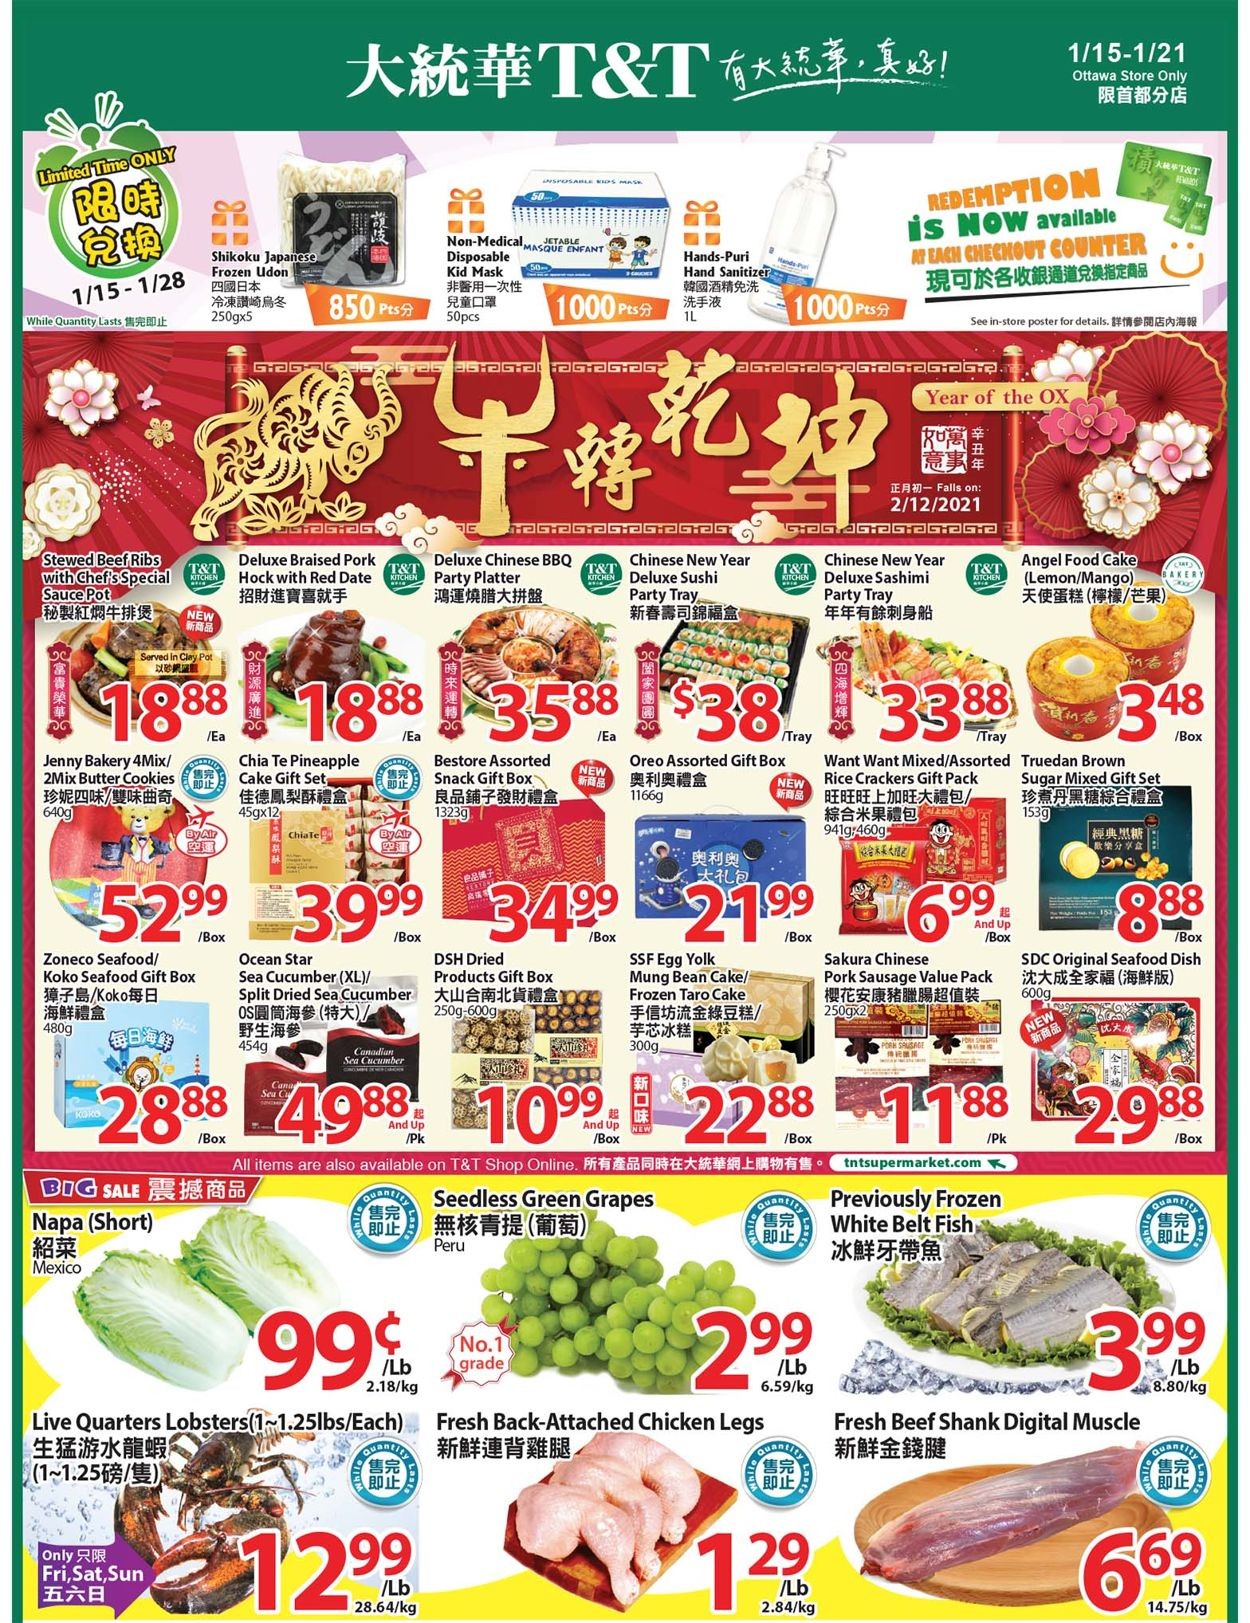 T&T Supermarket - Ottawa Flyer - 01/15-01/21/2021